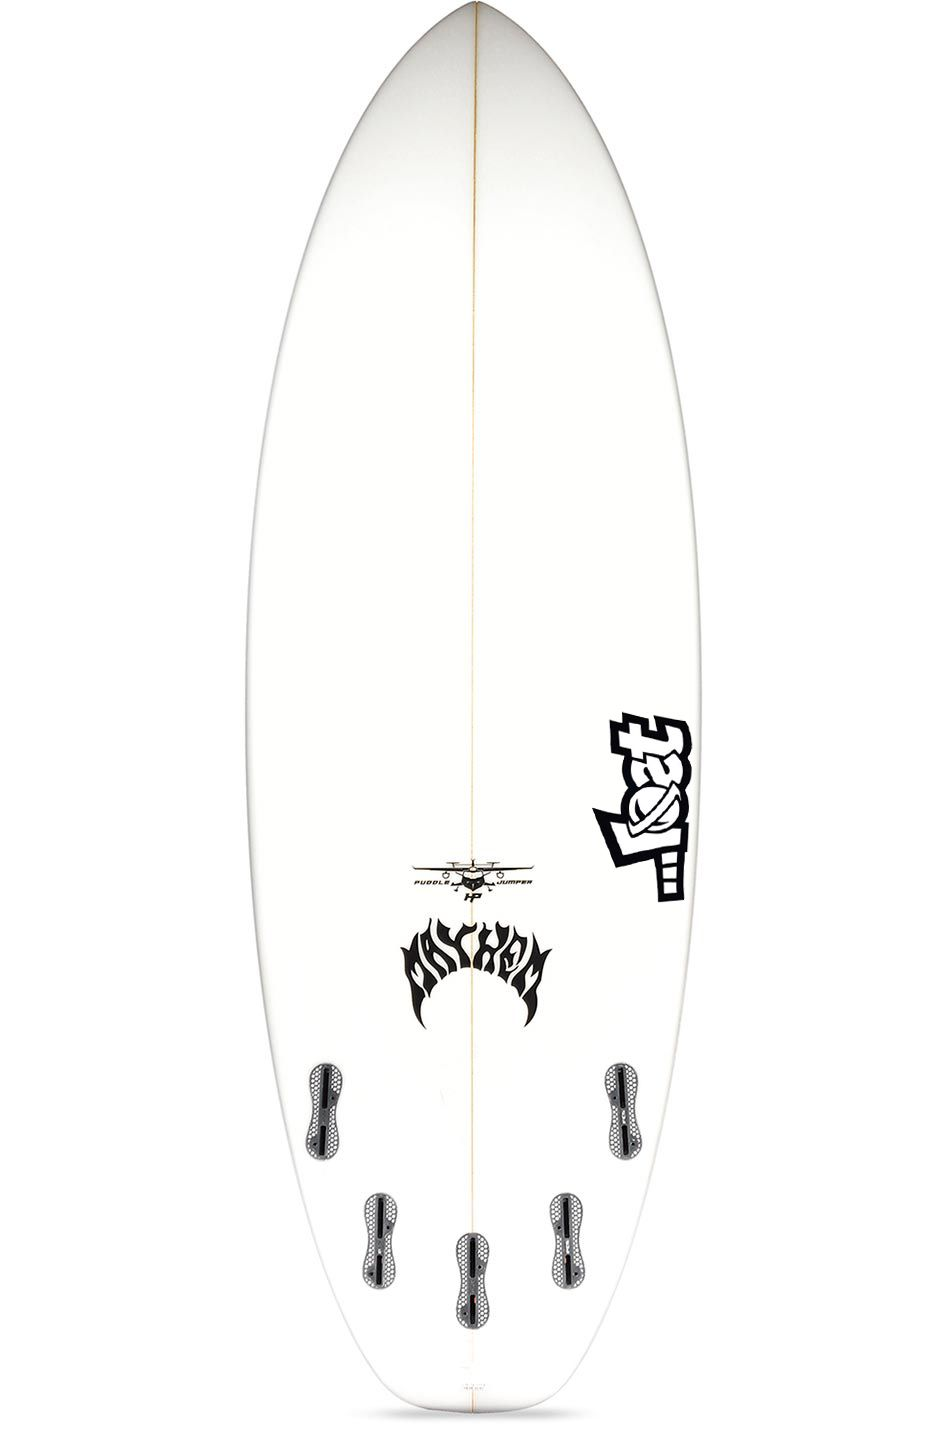 Prancha Surf Lost PUDDLE JUMPER HP 5'7 Squash Tail - White FCS II Multisystem 5ft7